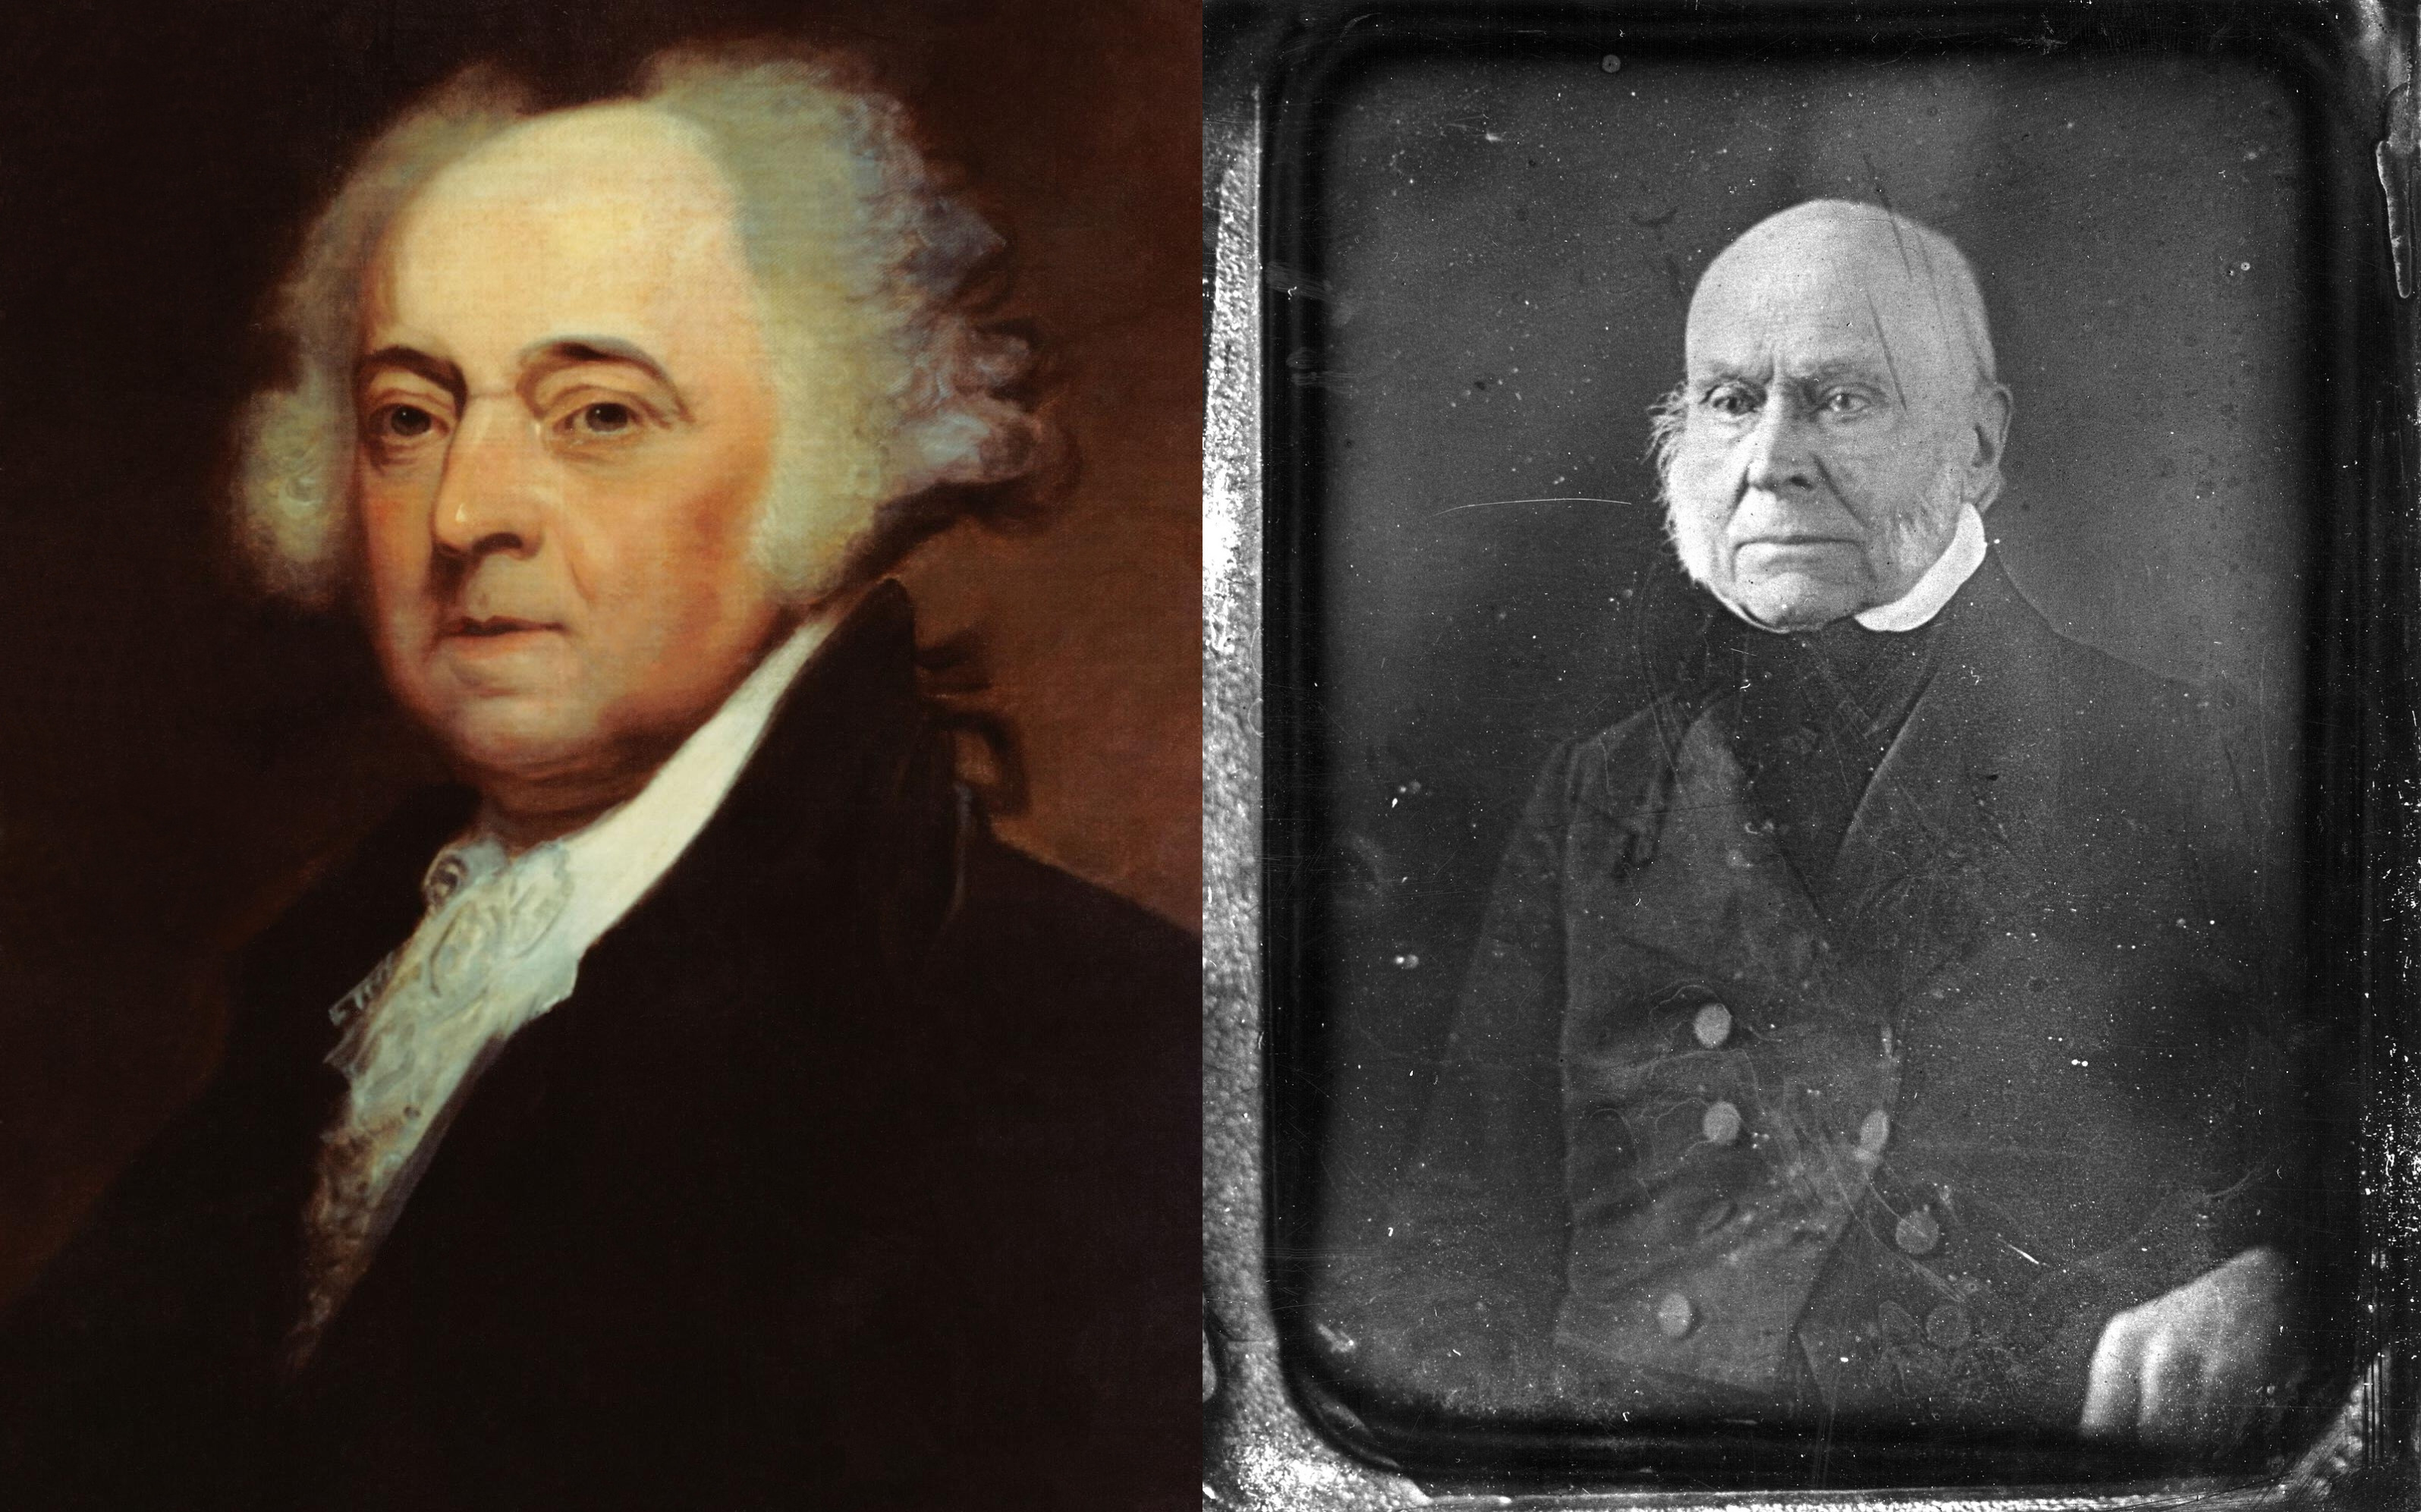 A painting of President John Adams (1735-1826), 2nd president of the United States and founding father, by Asher B. Durand (left, public domain through the US Navy) and daguerreotype c1840s of his son John Quincy Adams, the 6th U.S. President, John Quincy Adams (right, public domain through Smithsonian Institution Archives).